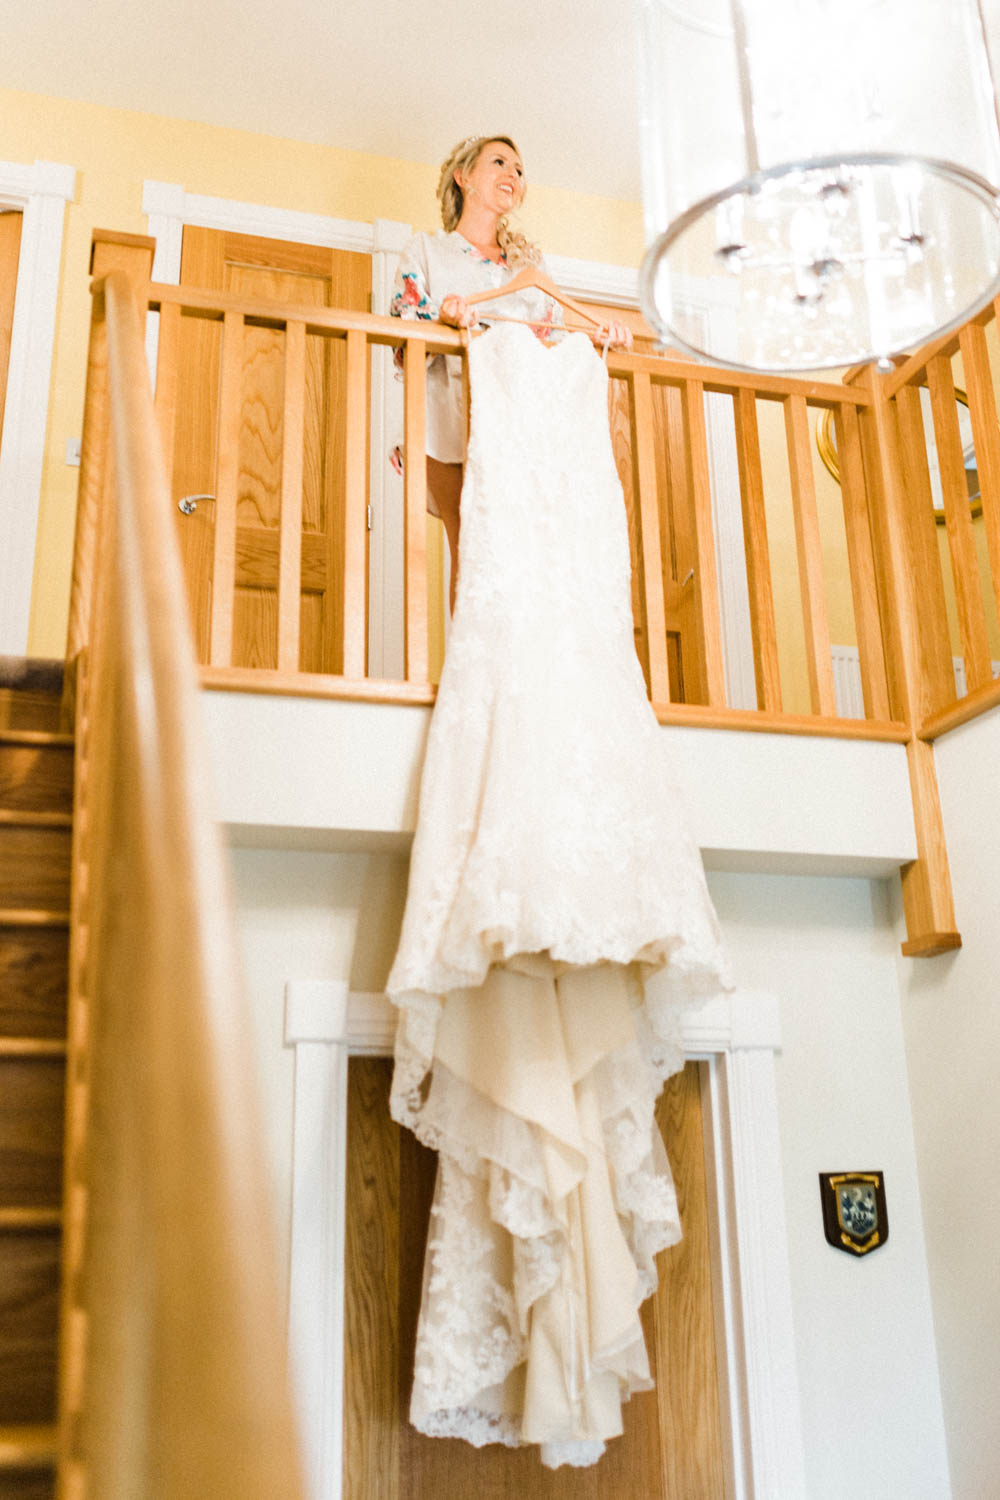 Special-Day-Photography-The-Manor-House-Hotel-Moreton-in-Marsh-Moreton-In-Marsh-Summer-Wedding-The-bride-with-her-long-wedding-dress-with-train.jpg